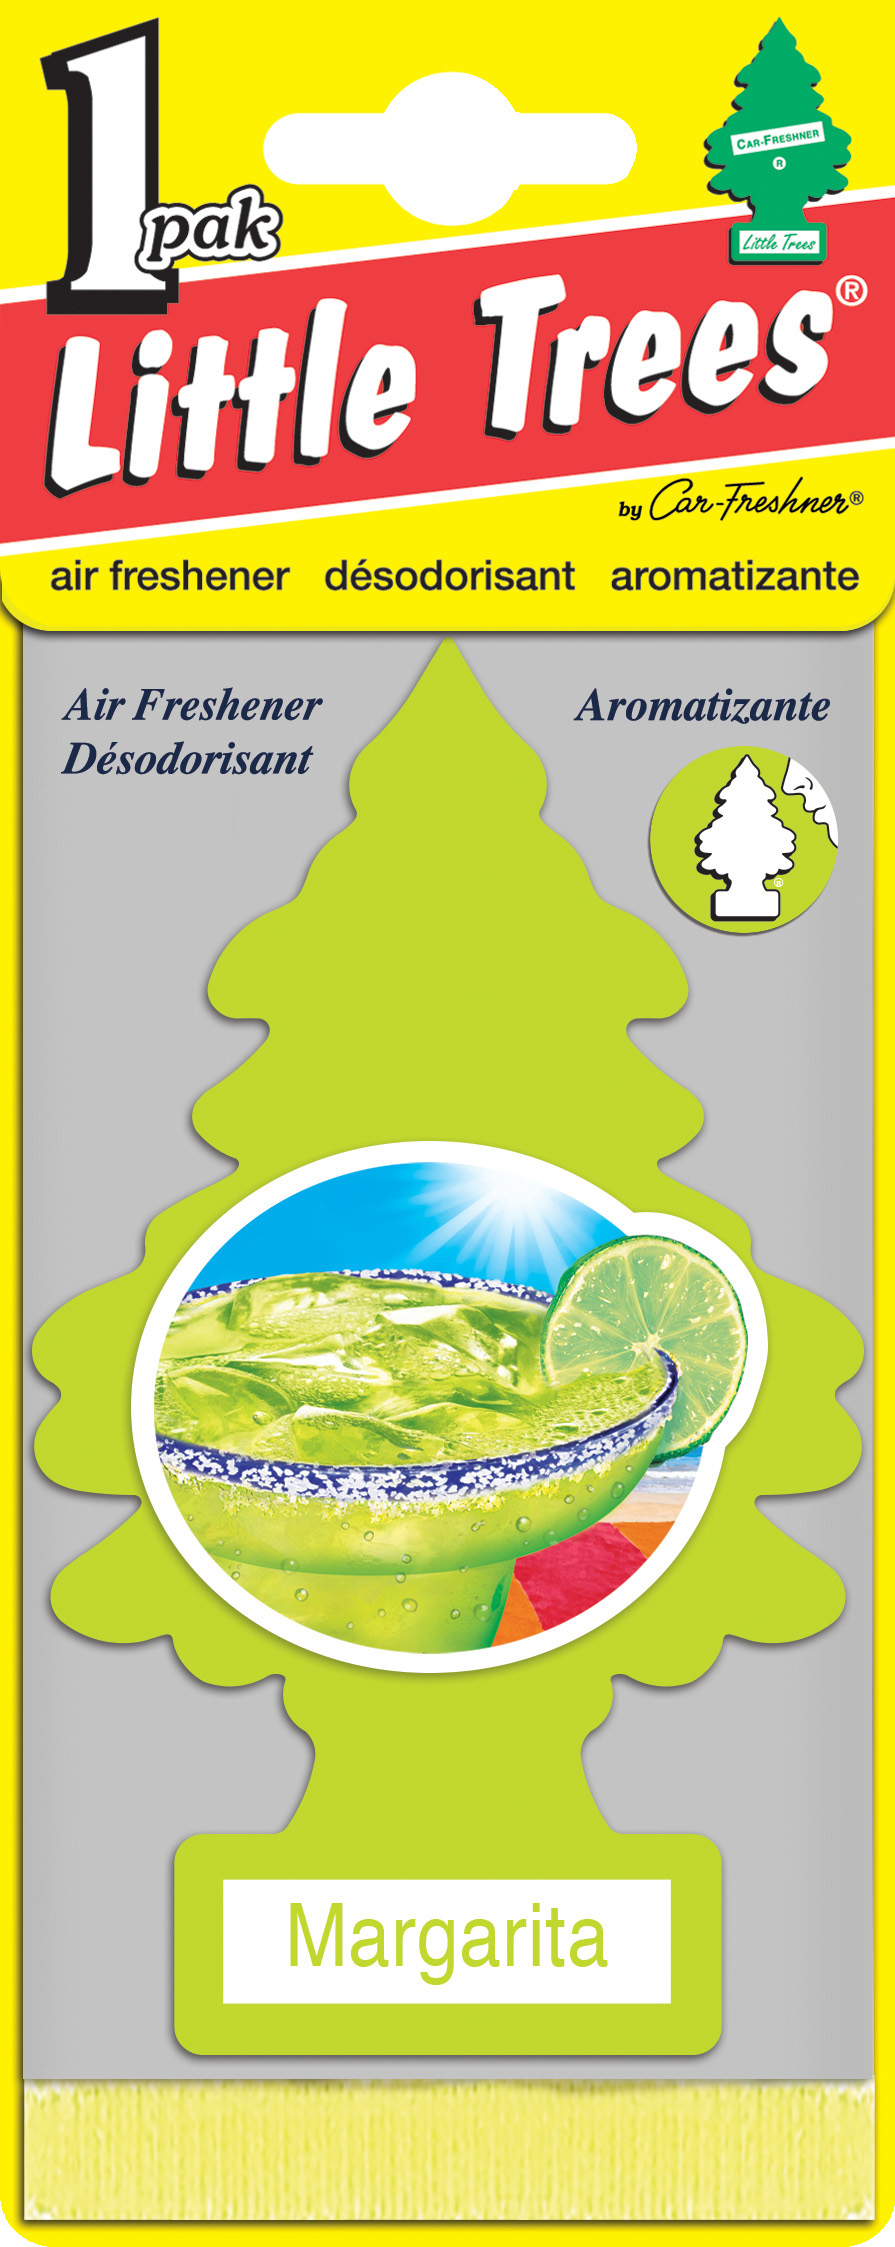 U1P-10543 Car Freshner Air Freshener Pine Tree Design